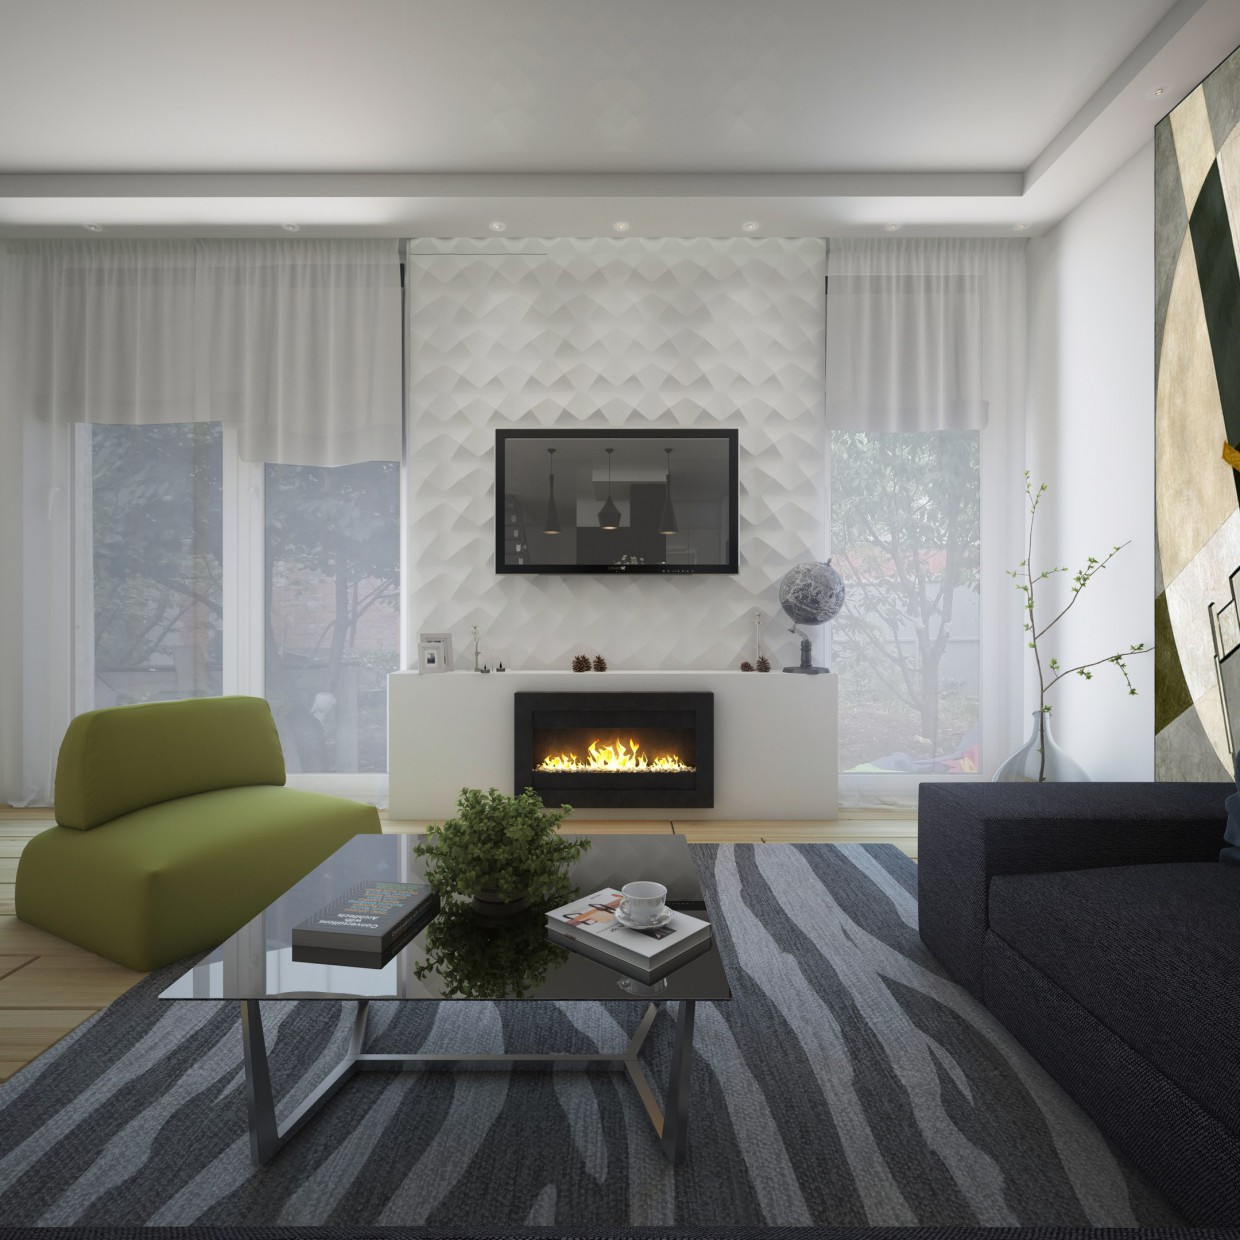 Interior living room in 3d max vray image